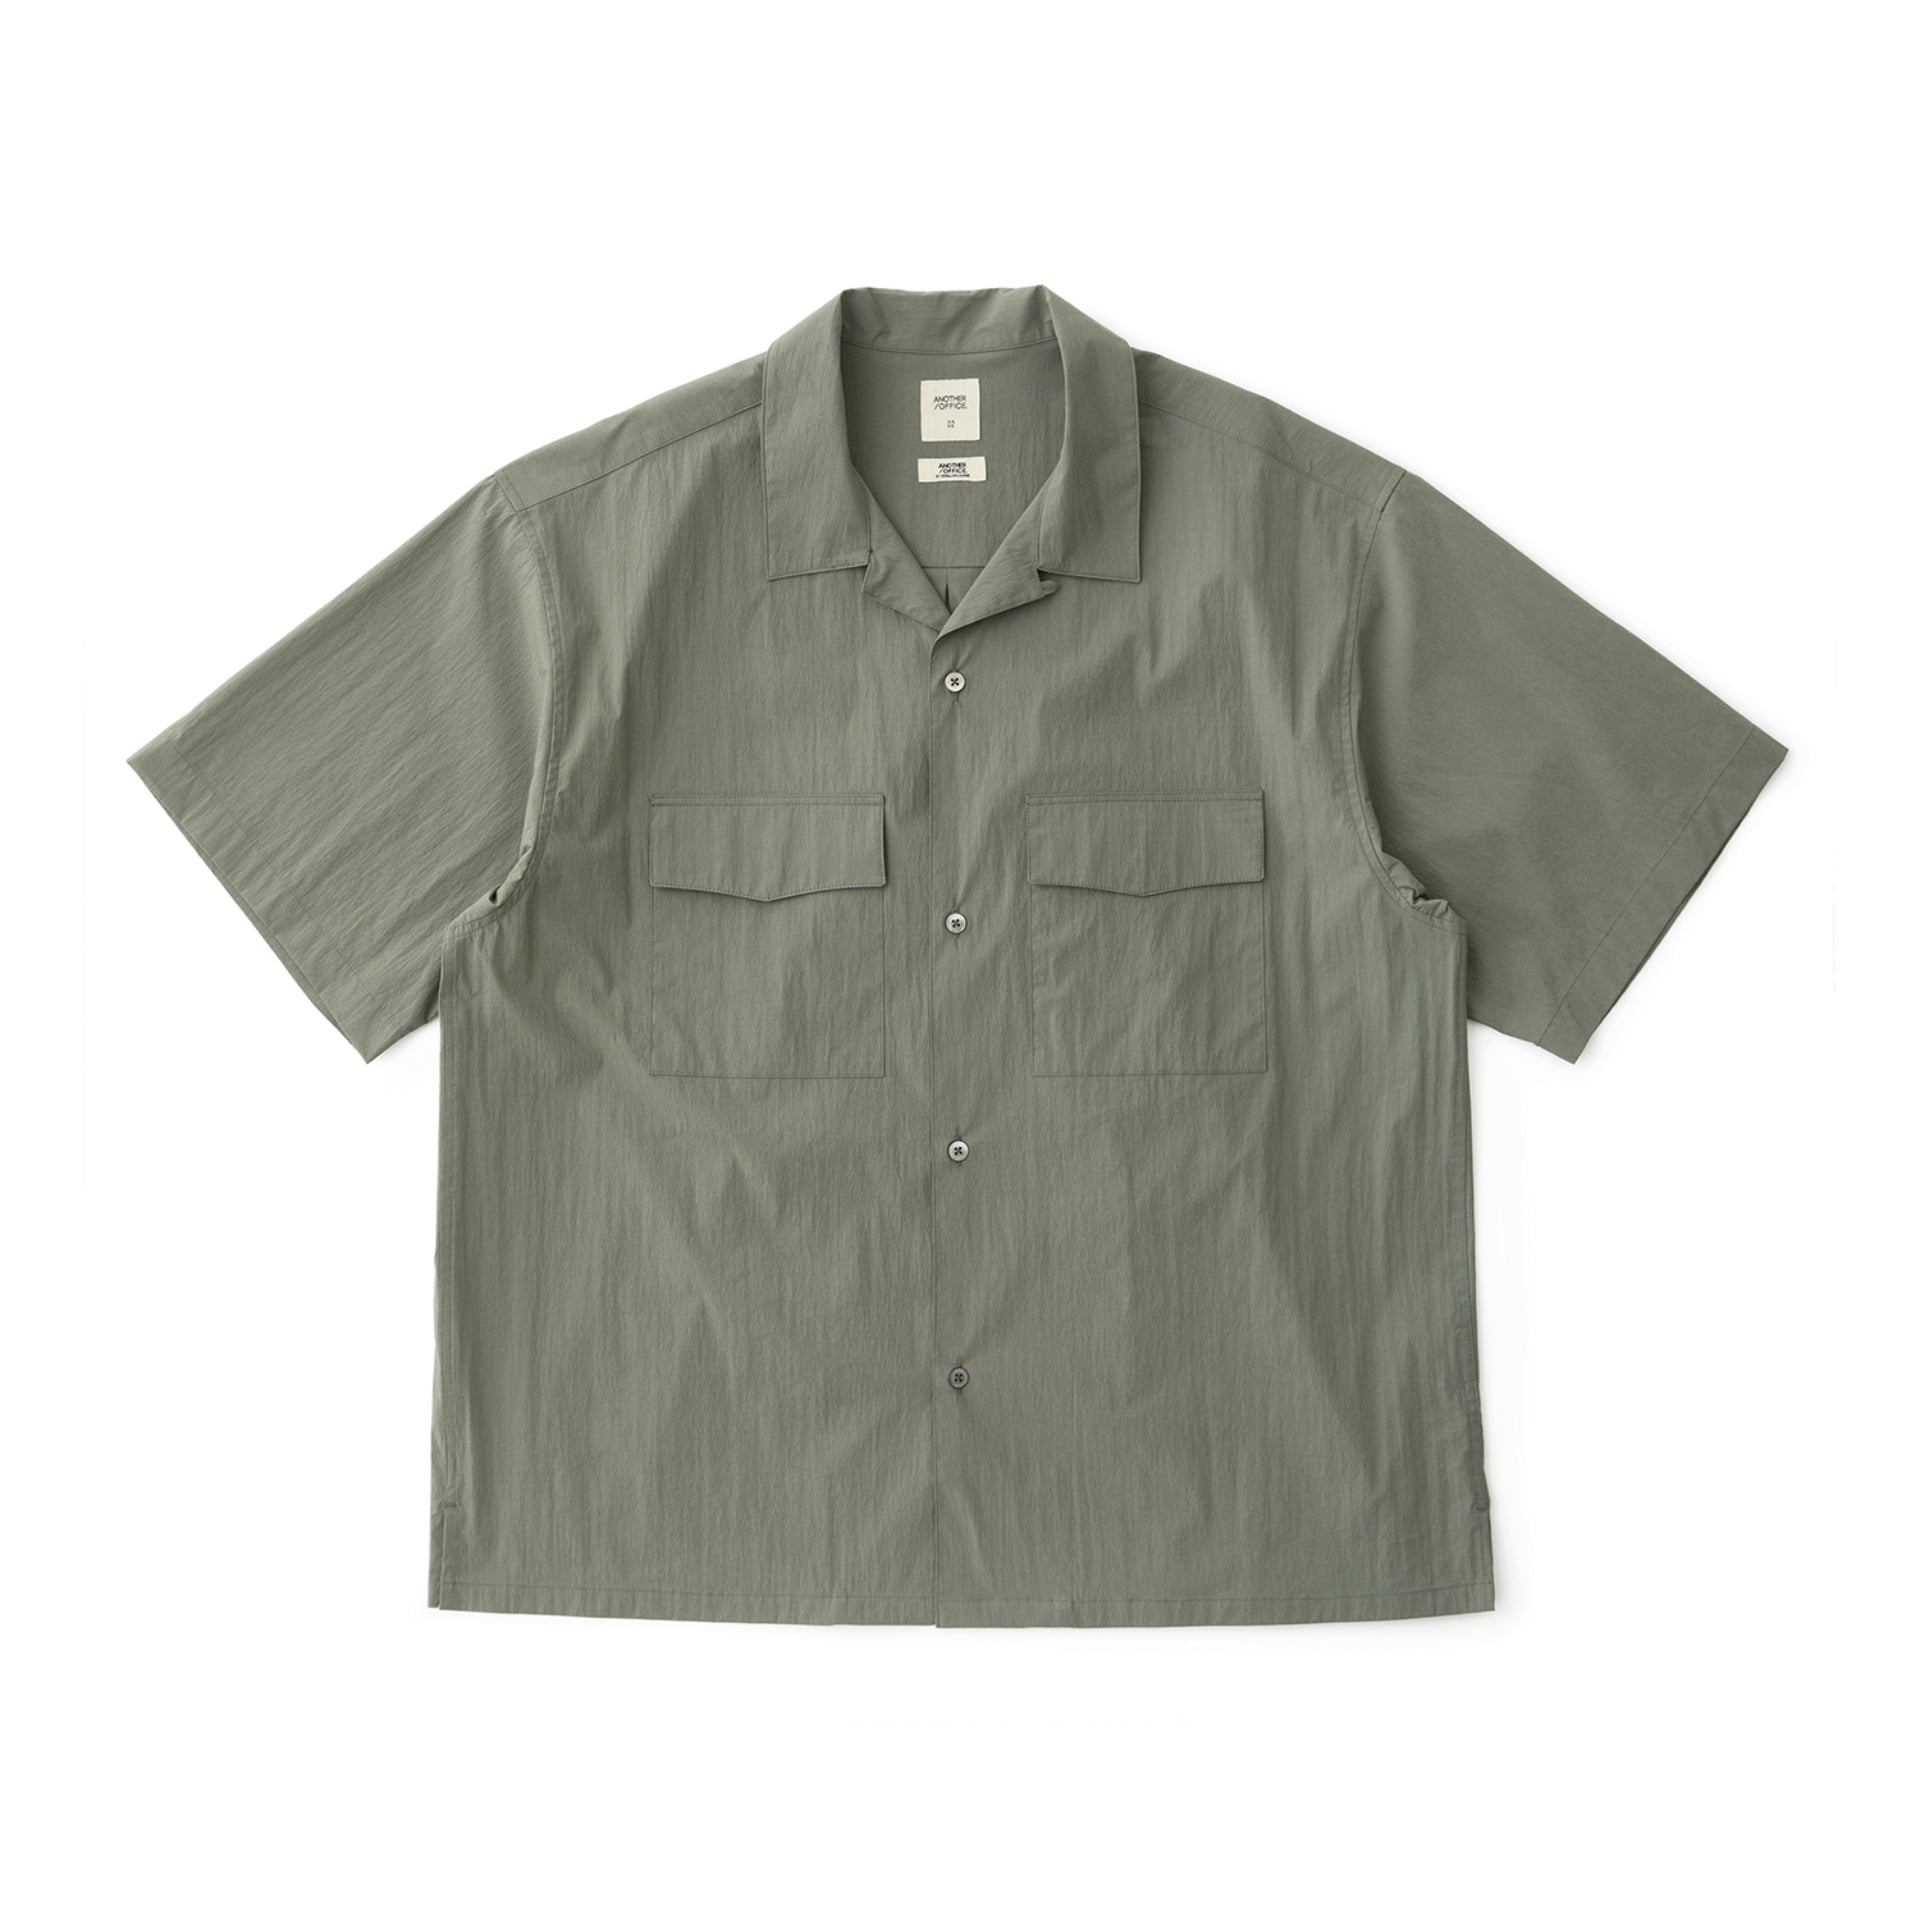 Voyager Open Collor Shirt (Sage Green)